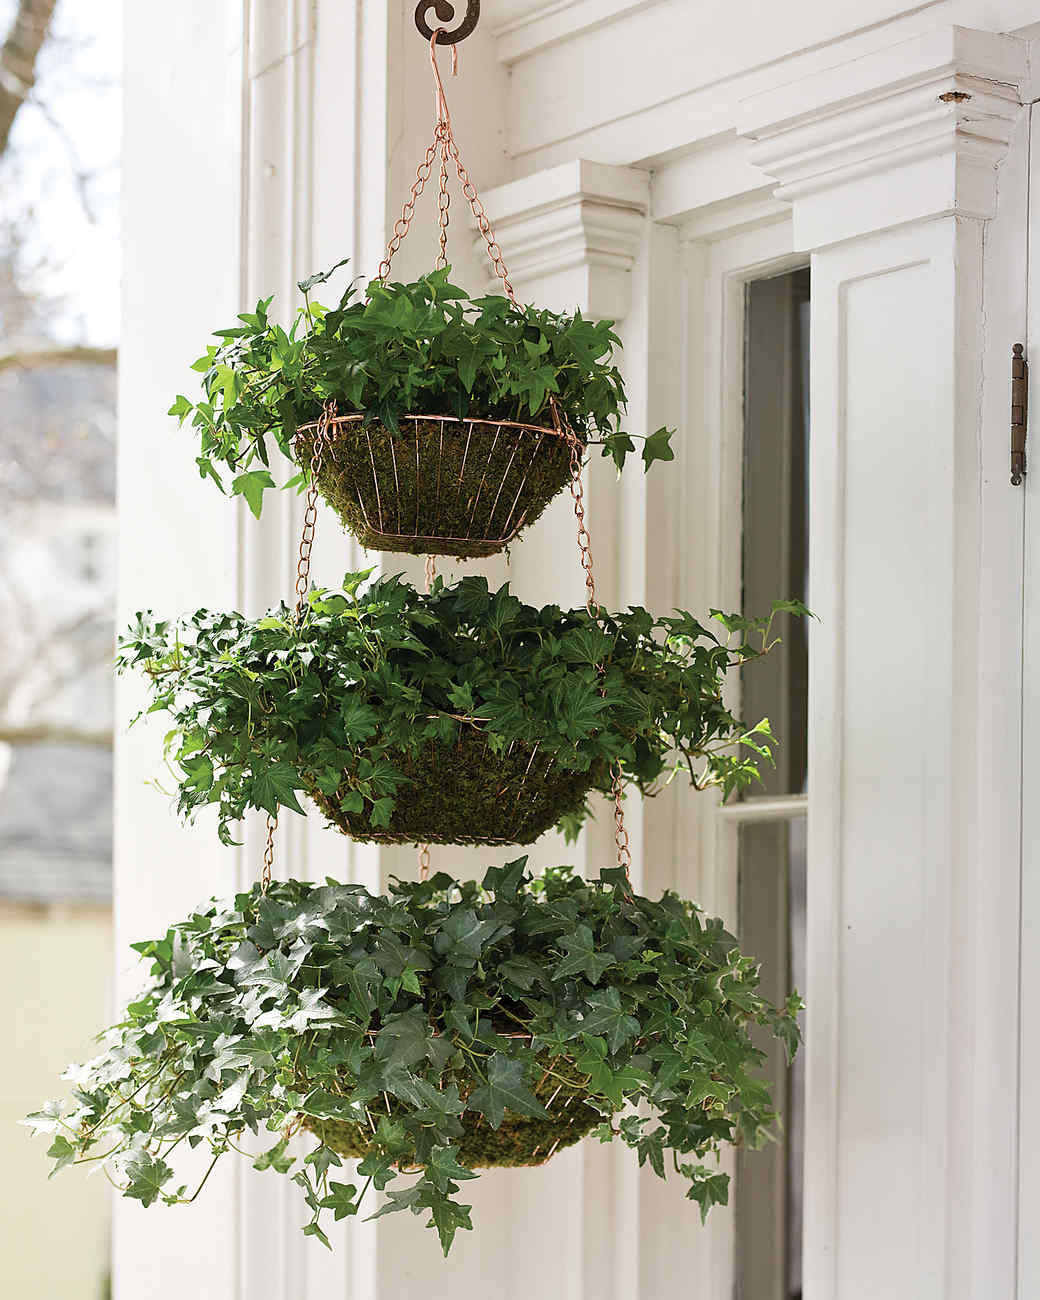 Wire Baskets Planter Center Badnitruscoasterbuzzcom Roller Coaster Diagram C Keith Mcveen Hanging Martha Stewart Rh Marthastewart Com Half Basket French Planters